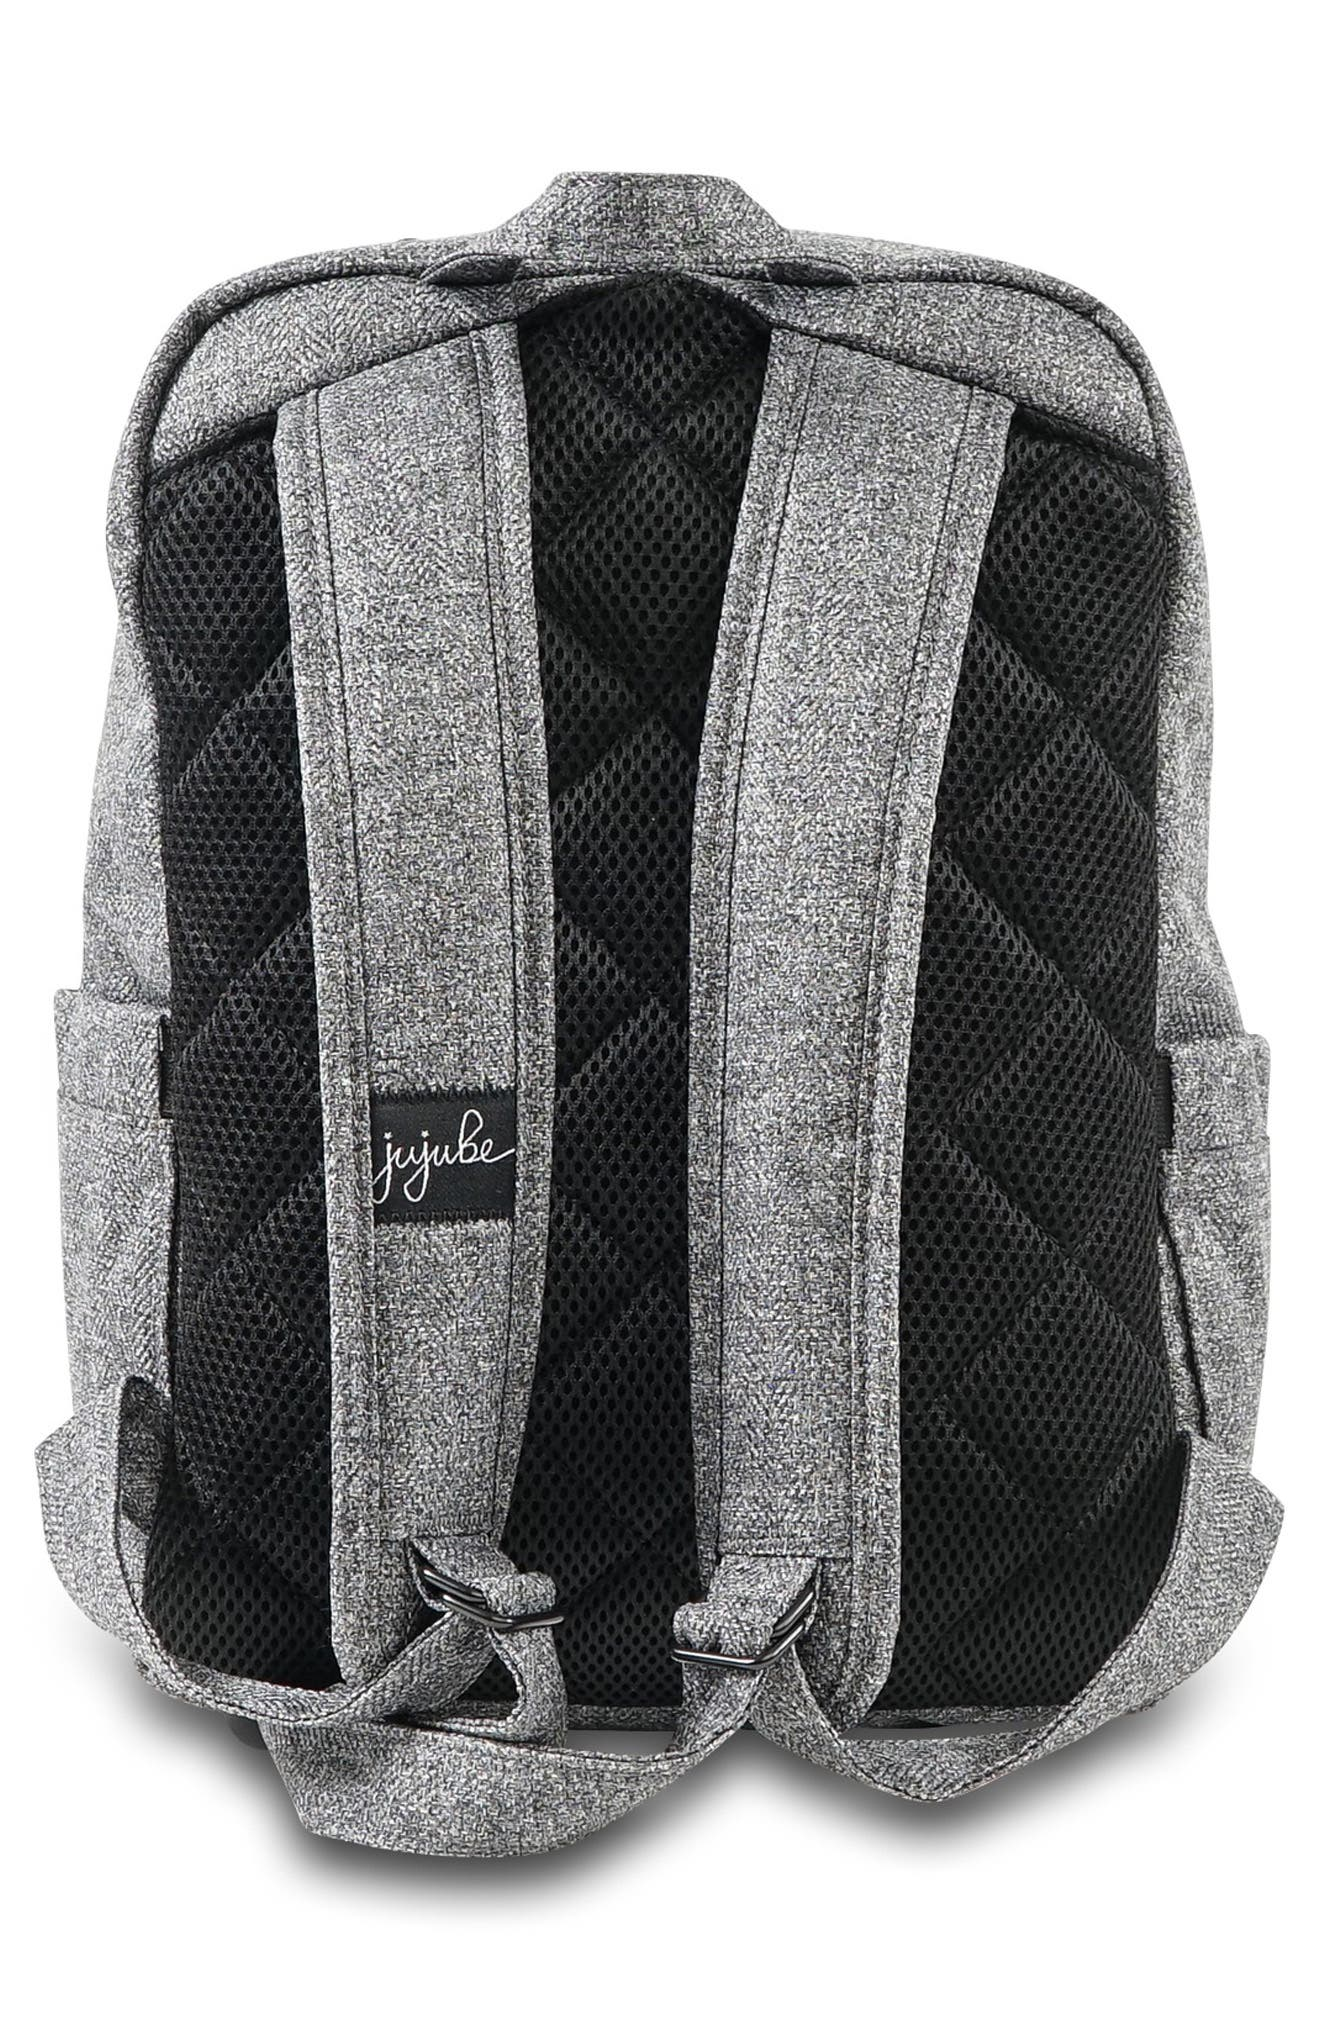 'Mini Be - Onyx Collection' Backpack,                             Alternate thumbnail 2, color,                             GRAY MATTER